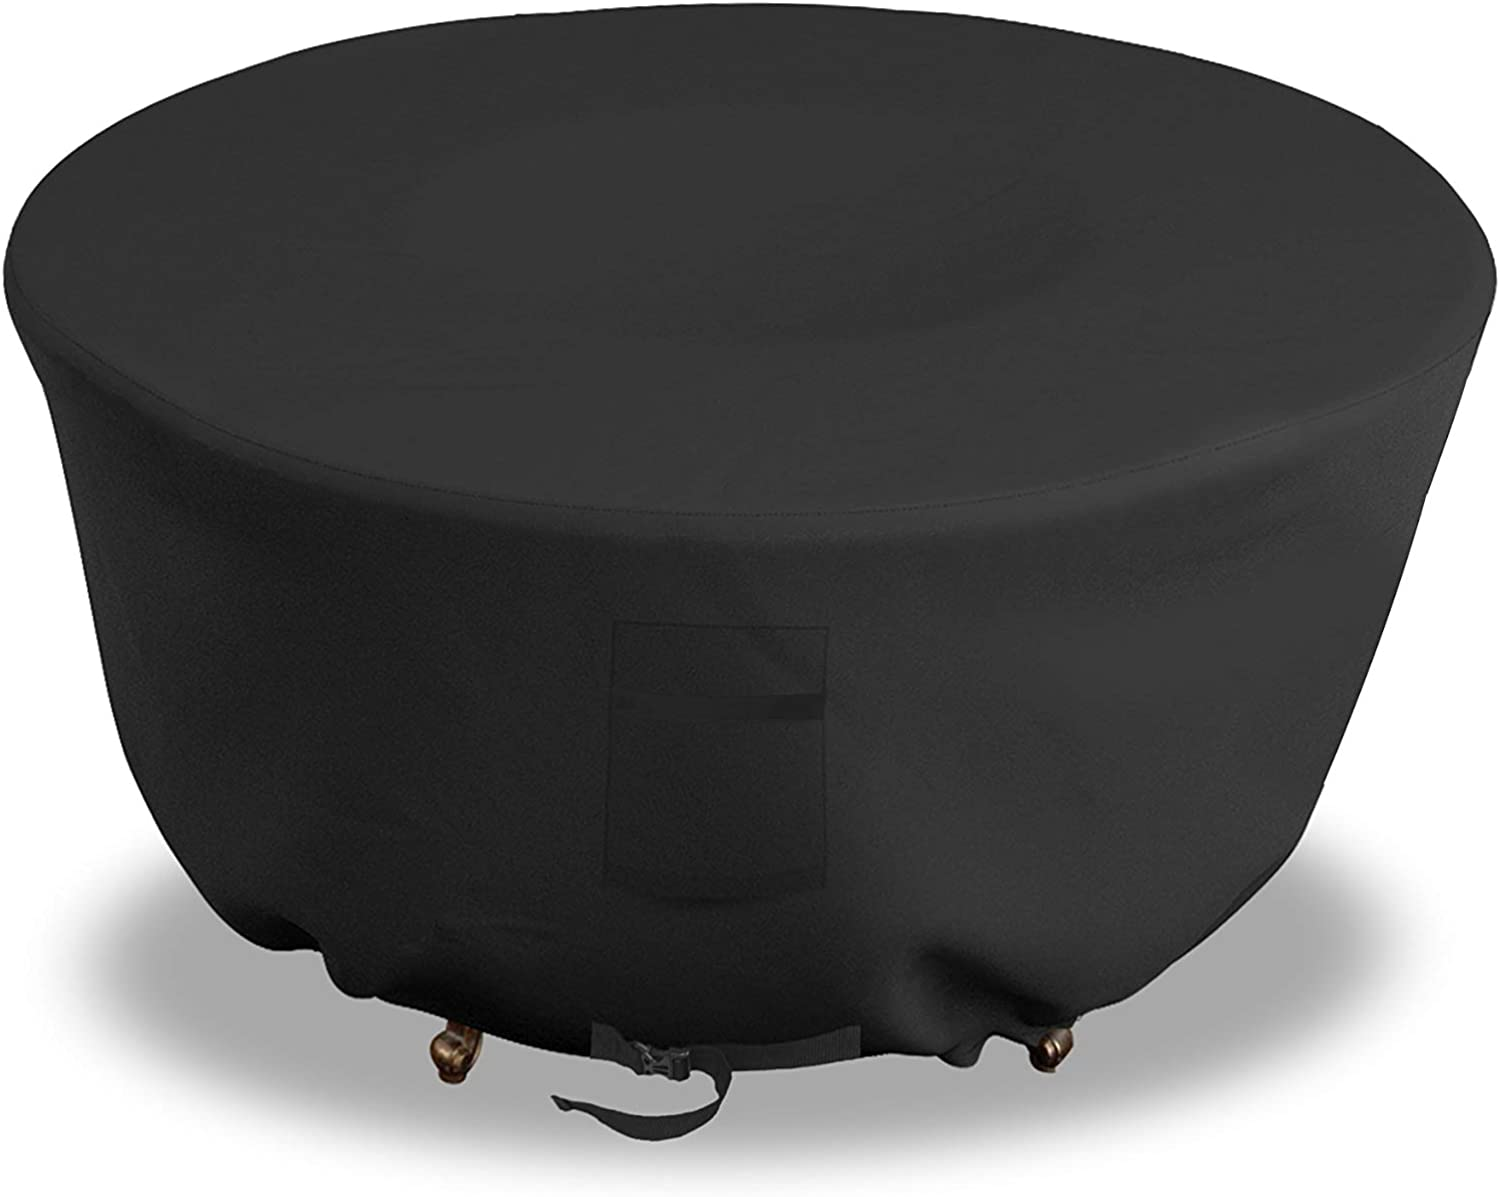 Firepit Covers Round 12 Oz Waterproof Resistant Max 43% OFF 100% F Weather Large special price -